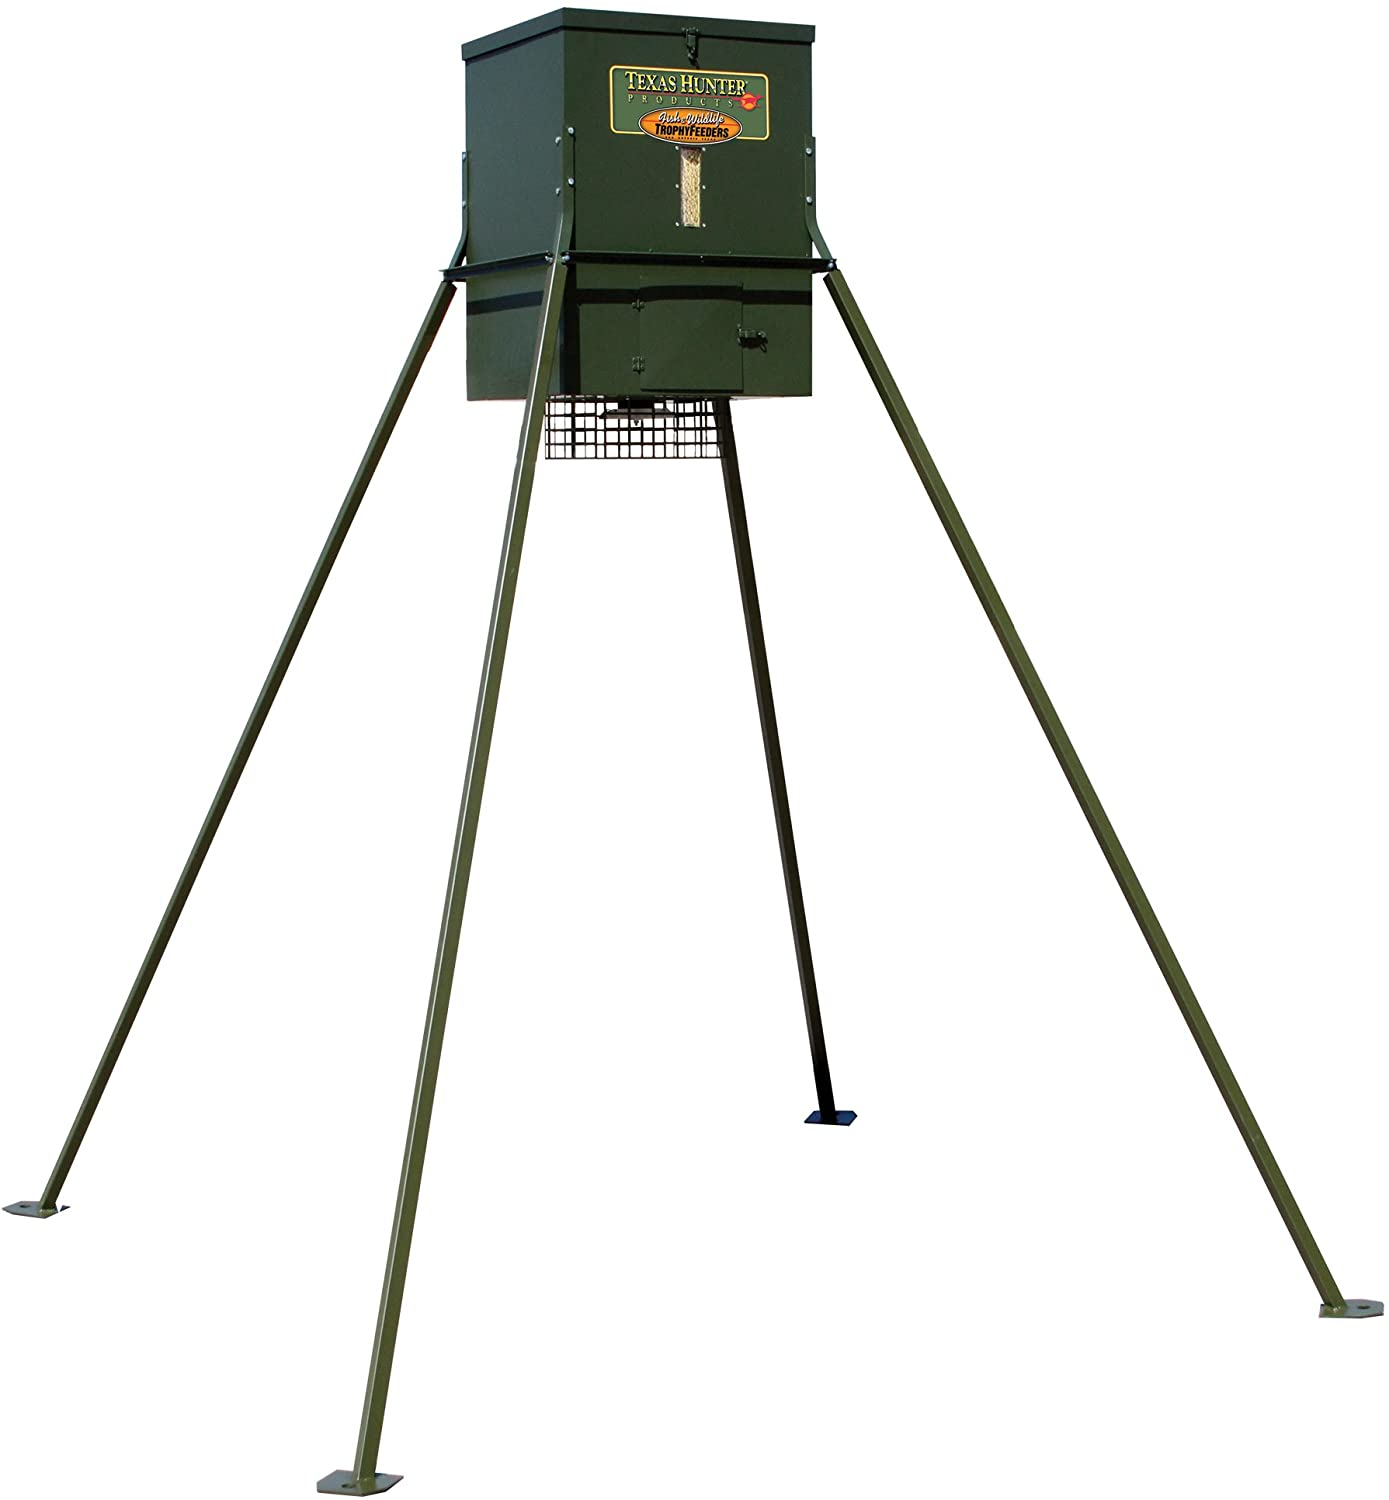 Texas Hunter Products Wildlife & Deer Feeder w/ 8-Foot Heavy-Duty Extension Legs - 300 lb. Corn Capacity - Model TF300L8